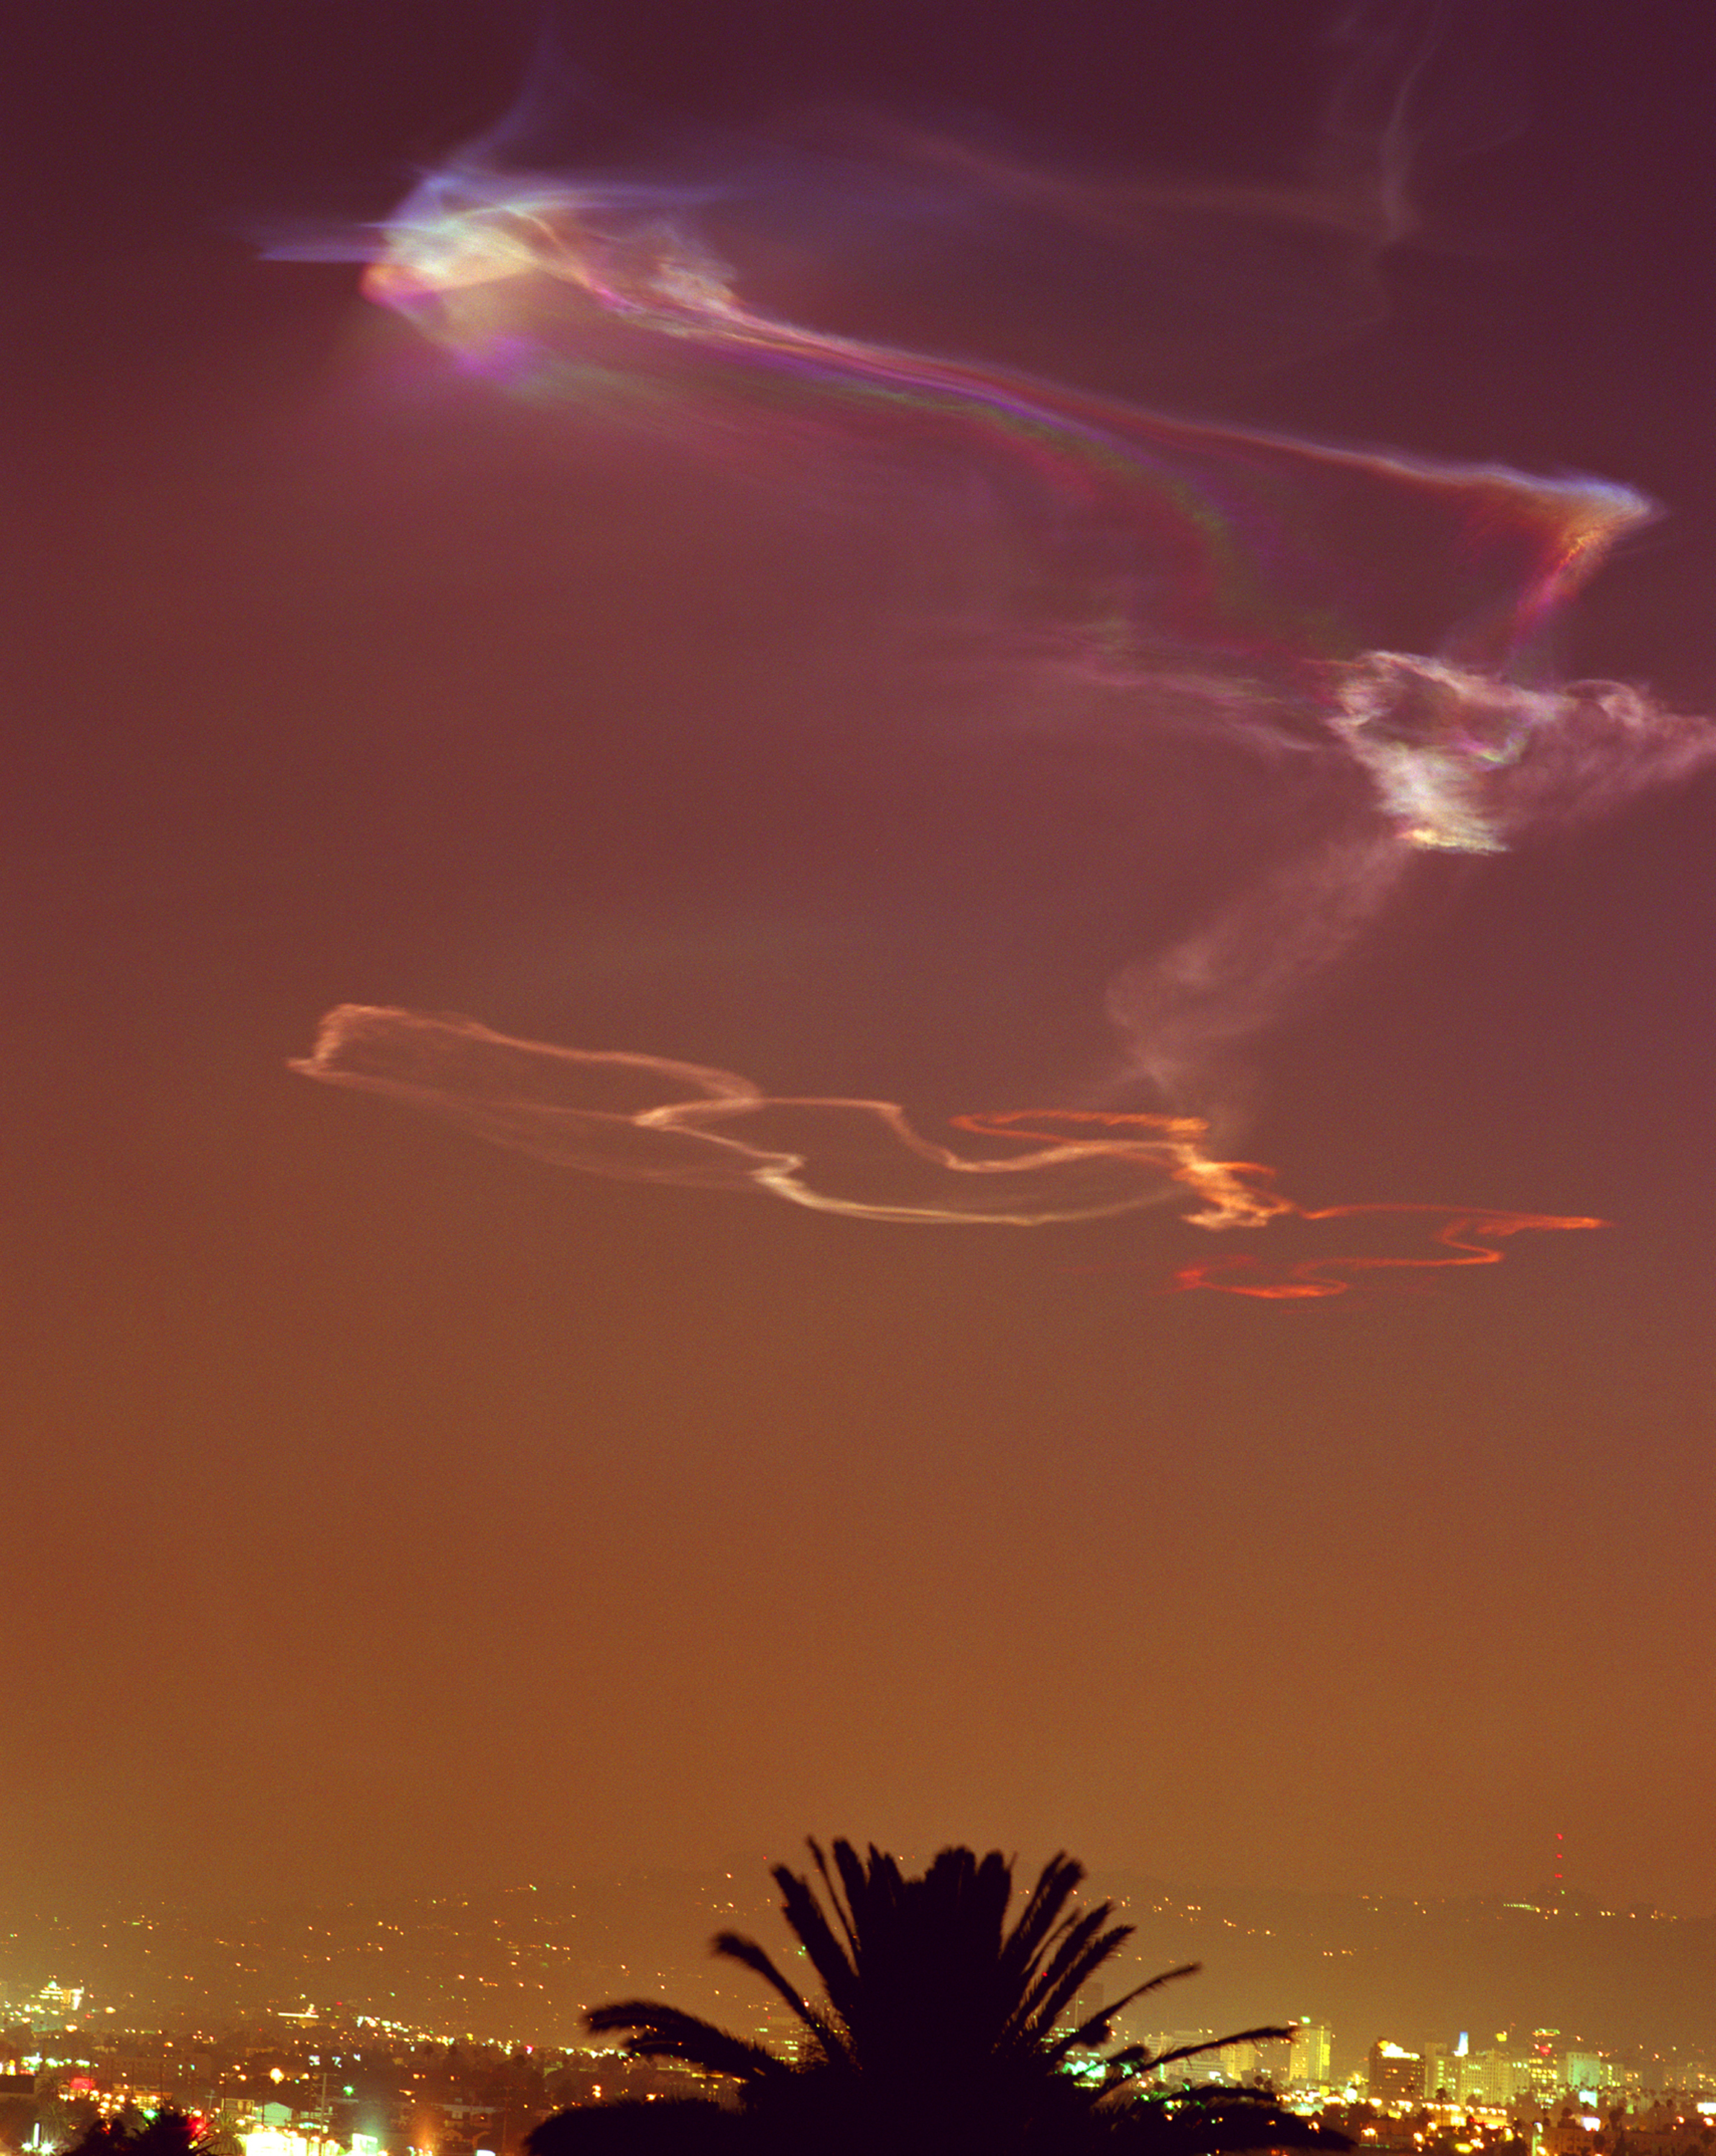 Connie Samaras,  Angelic States - Events Sequence: Minuteman Missile Over Los Angeles , 1998  Digital pigment print, 50 x 40 inches, edition of 5   Inquire